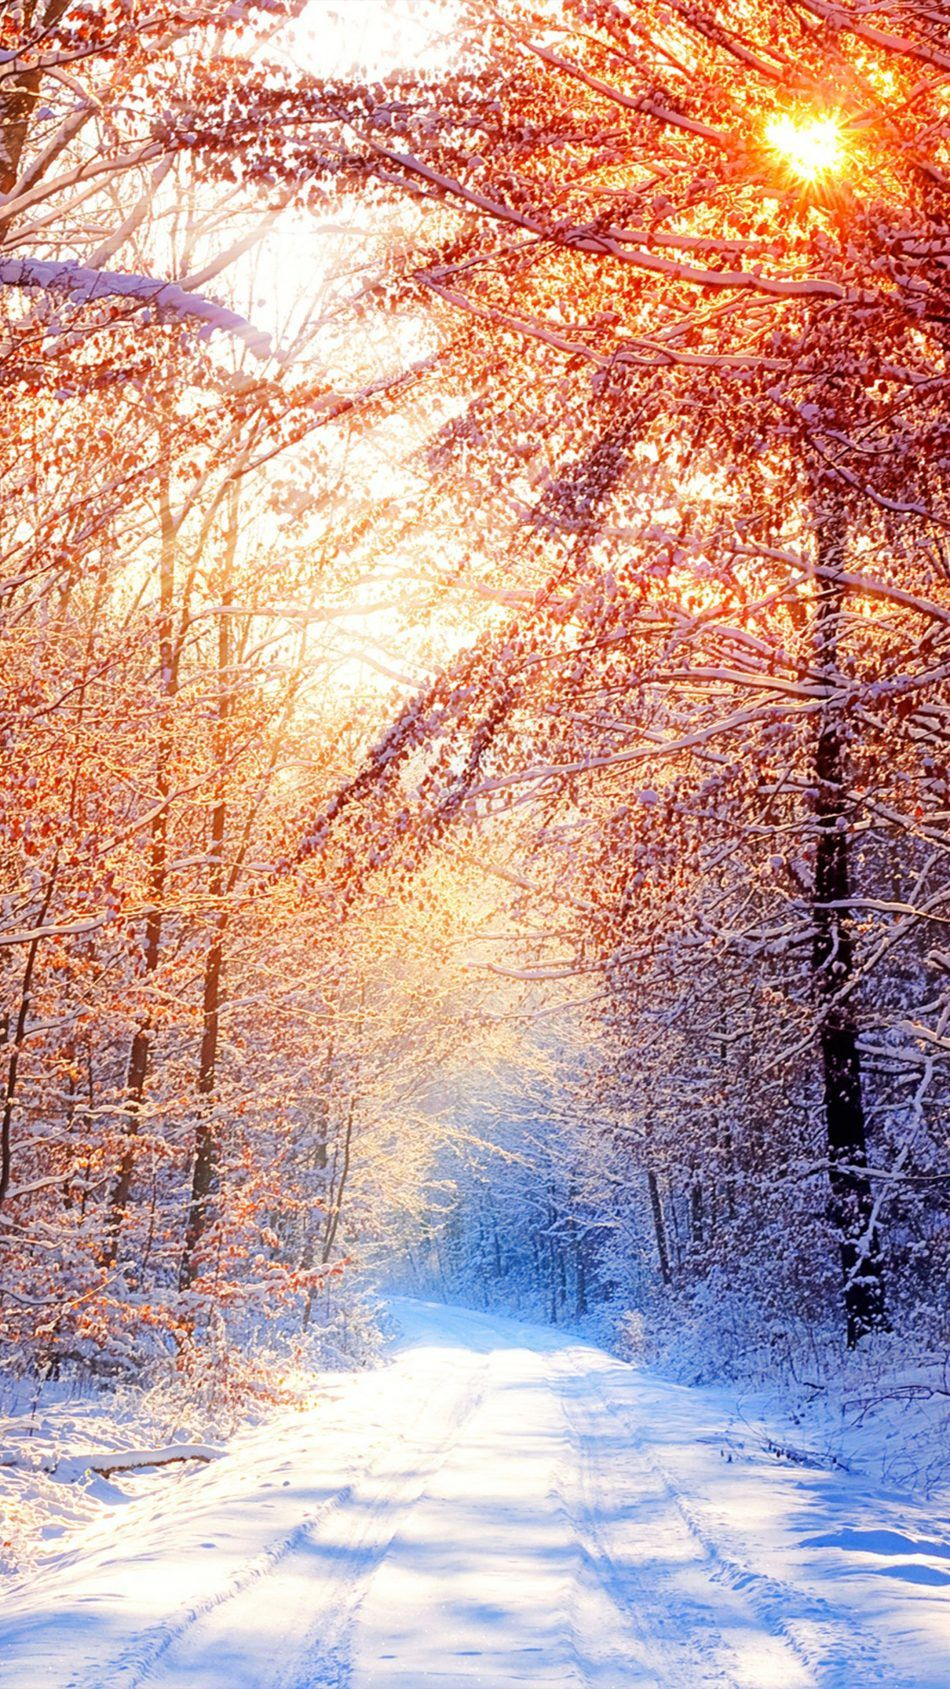 Snow Trees Winter Morning 4k Ultra Hd Mobile Wallpaper Iphone Wallpaper Winter Winter Wallpaper Winter Iphone